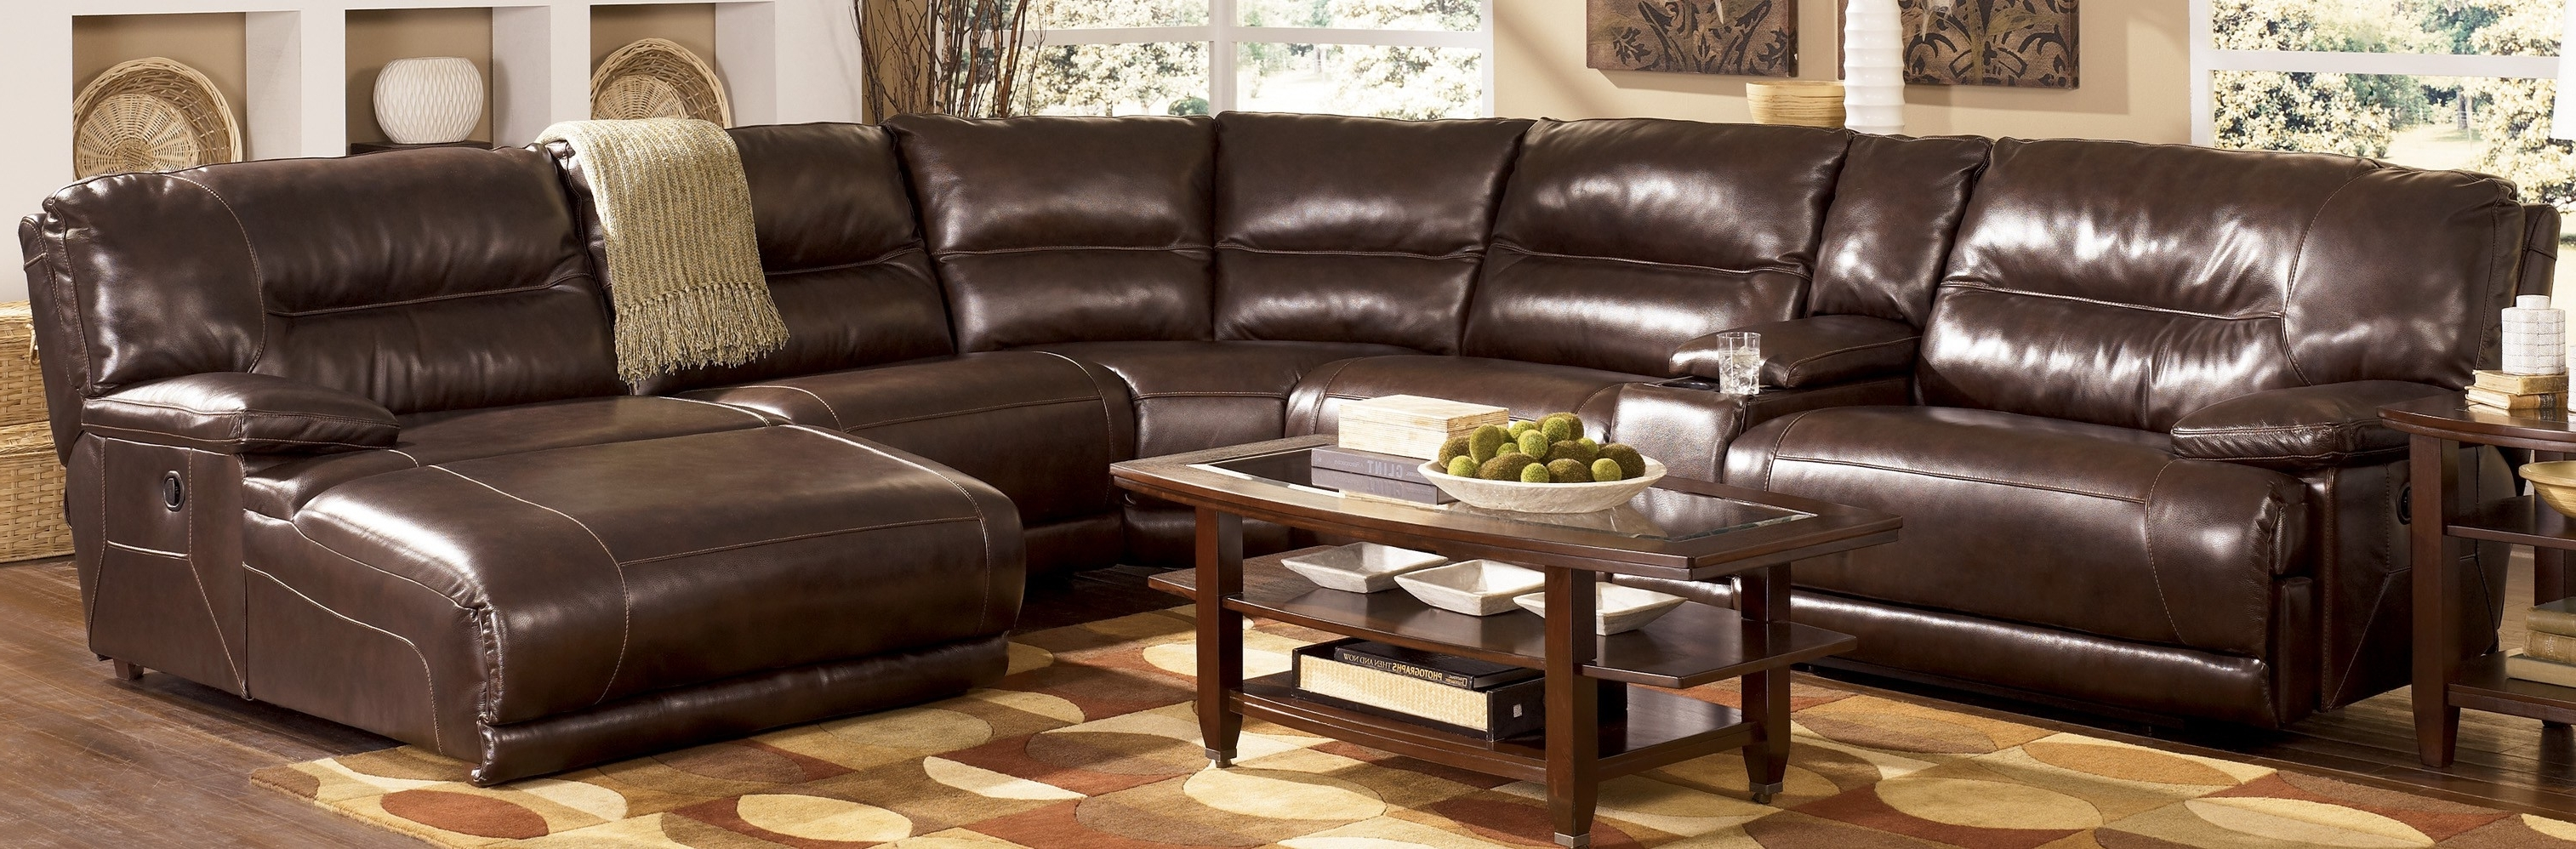 Famous Leather Sectional Sleeper Sofa Sectional Sofas With Recliners And Inside Leather Sectional Sleeper Sofas With Chaise (View 12 of 15)